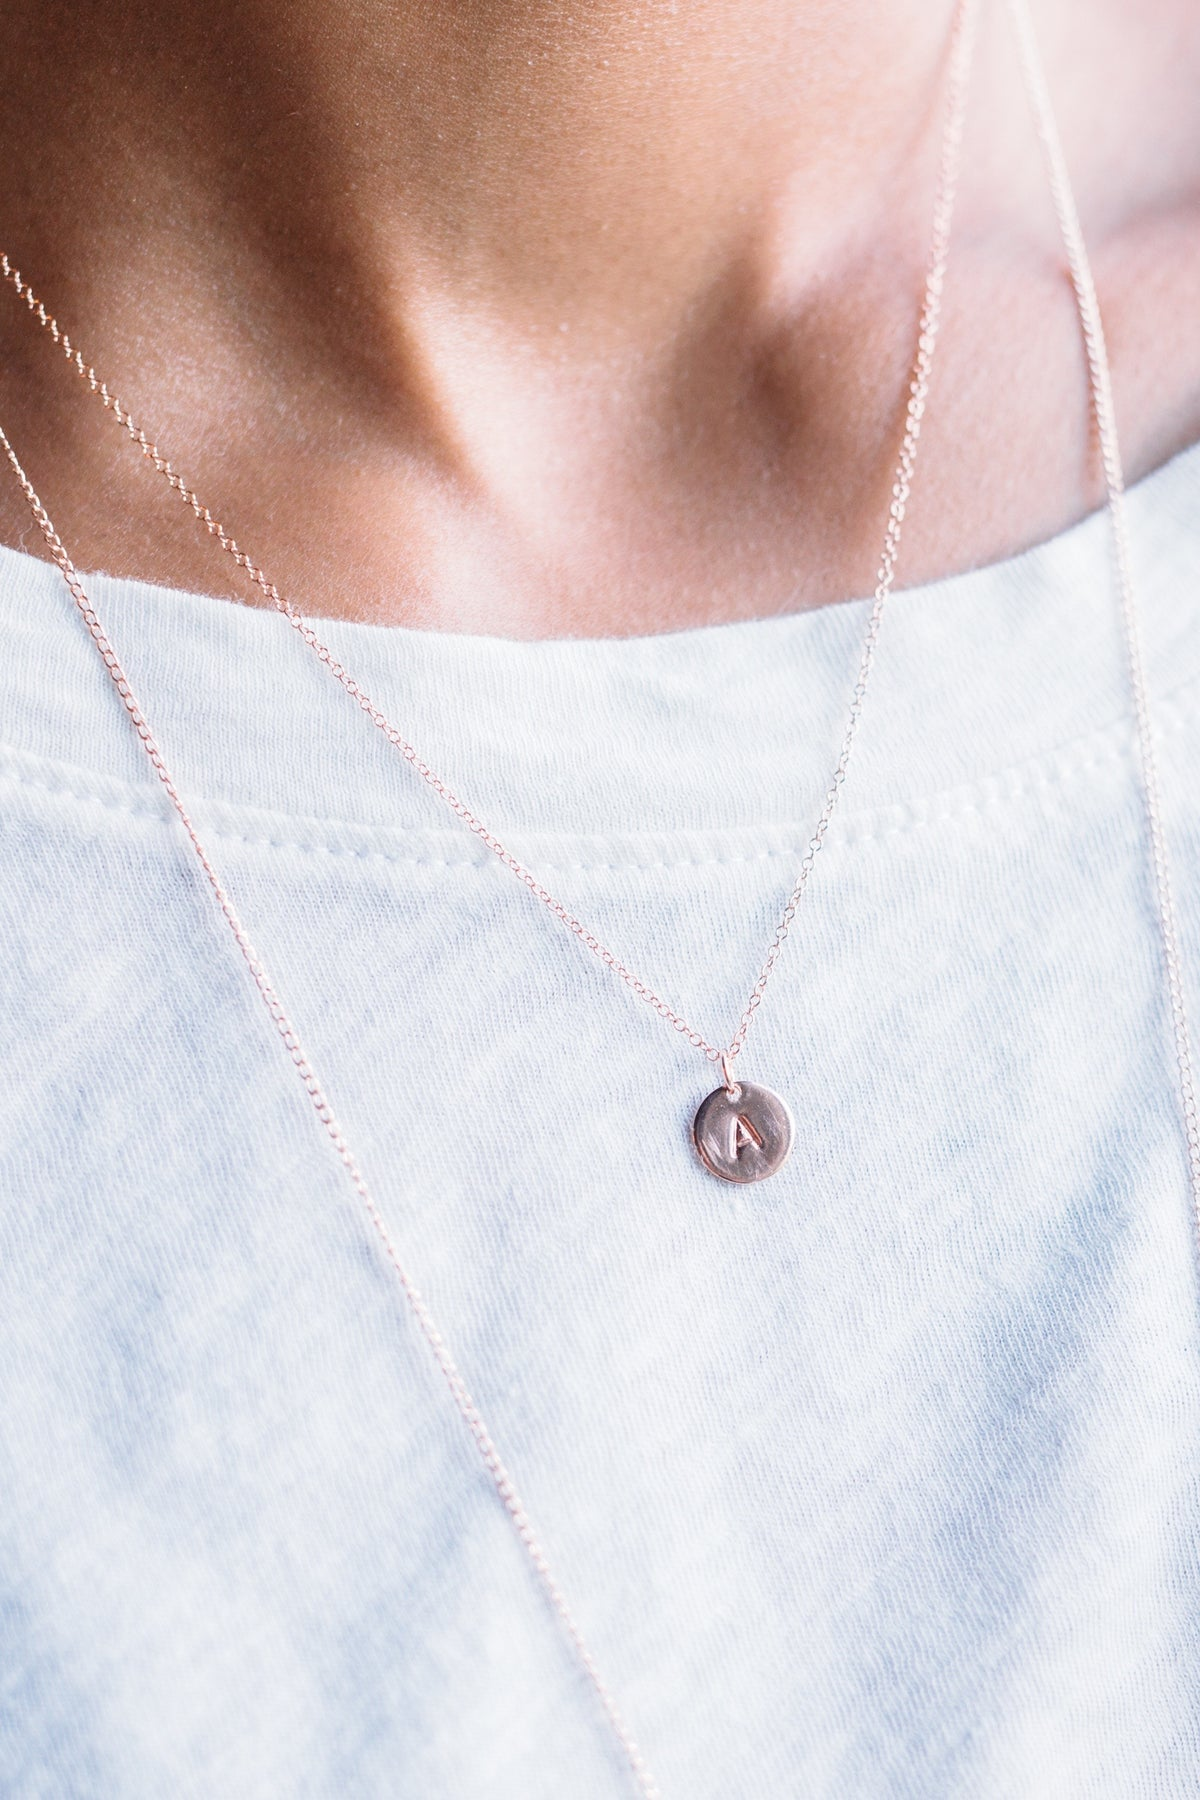 Rose Stamped - rose gold-fill stamped necklace